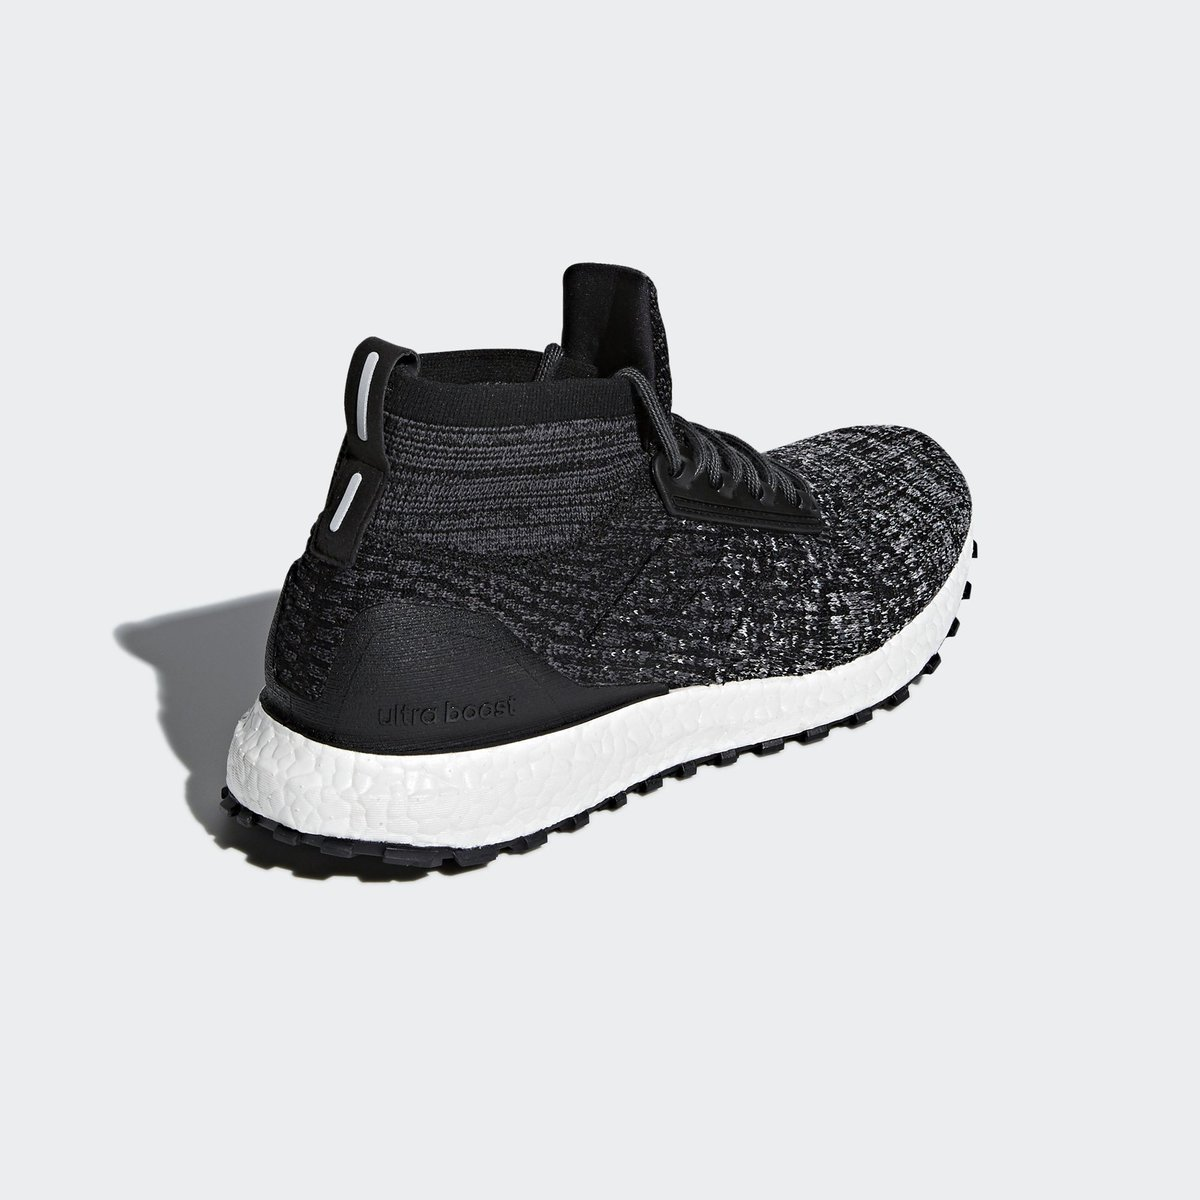 050699be24795 UltraBOOST ATR x Reigning Champ 14th February Very Limited Cop or Drop   pic.twitter.com 0xRF38hGZh